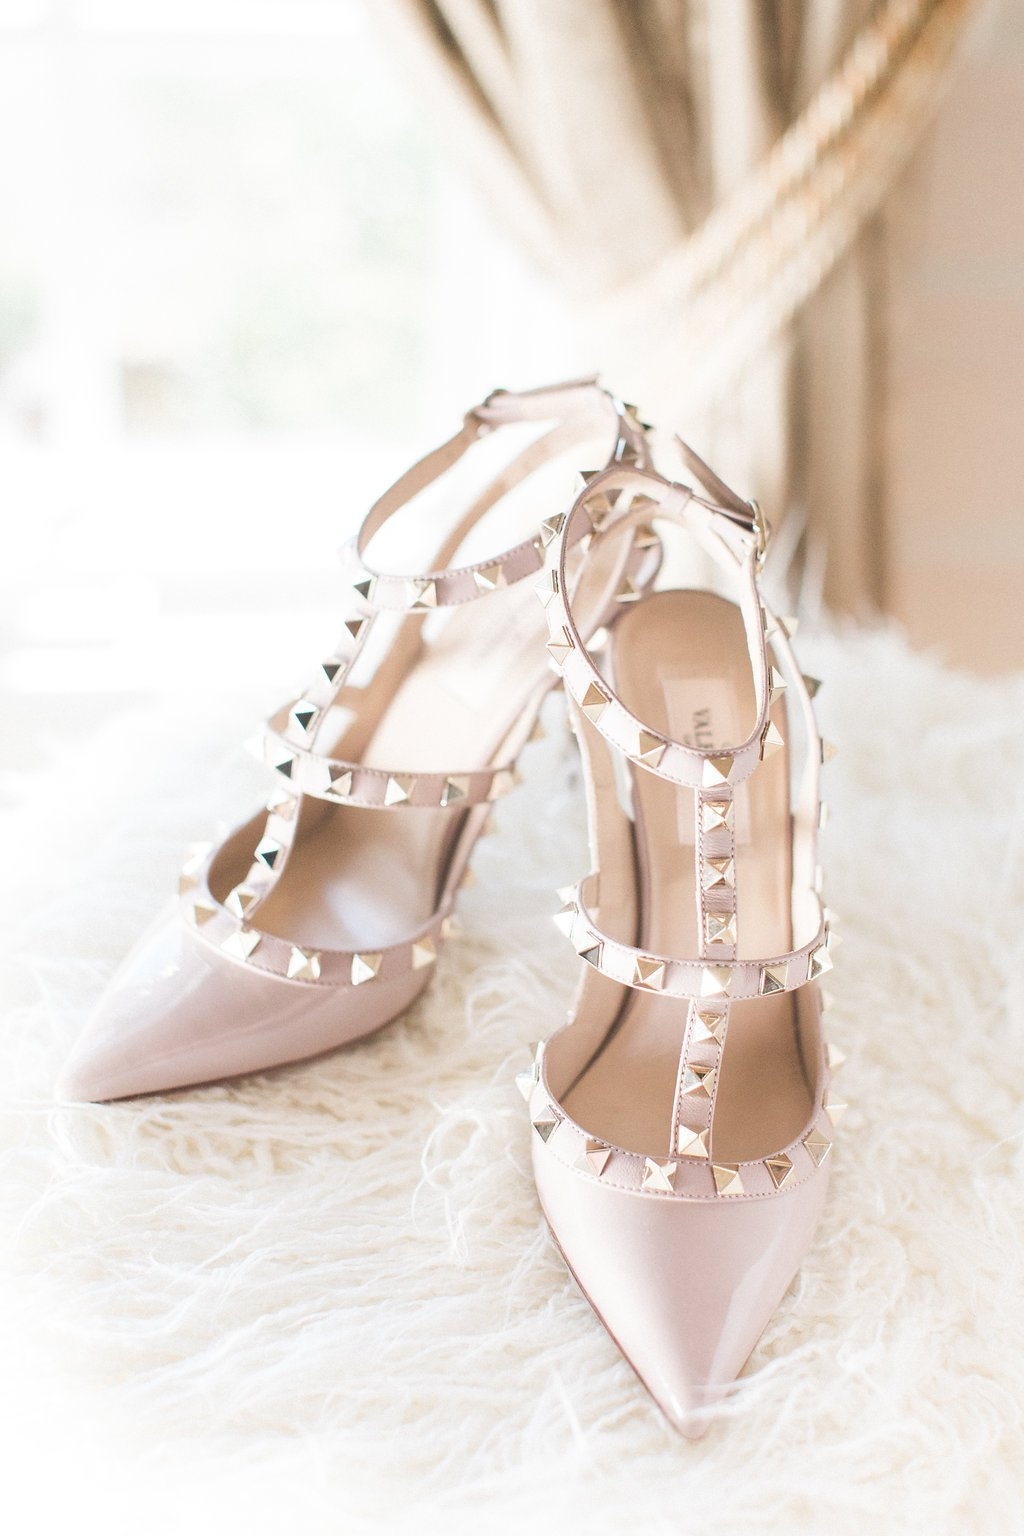 Valentino Rockstud high heel wedding shoes in beige